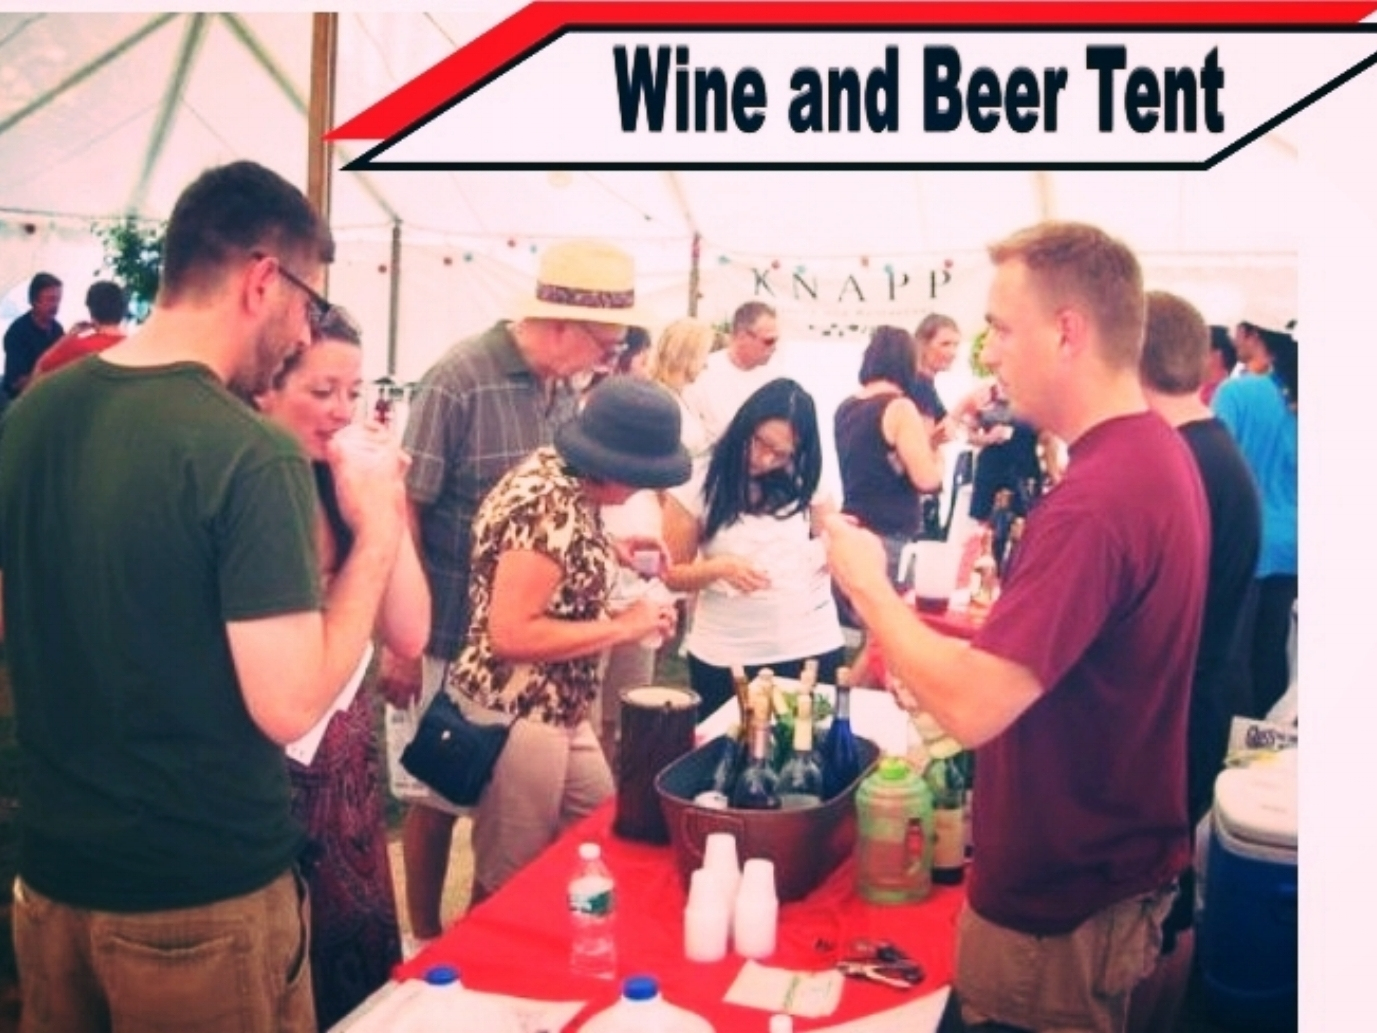 WINE AND BEER TENT INFORMATION